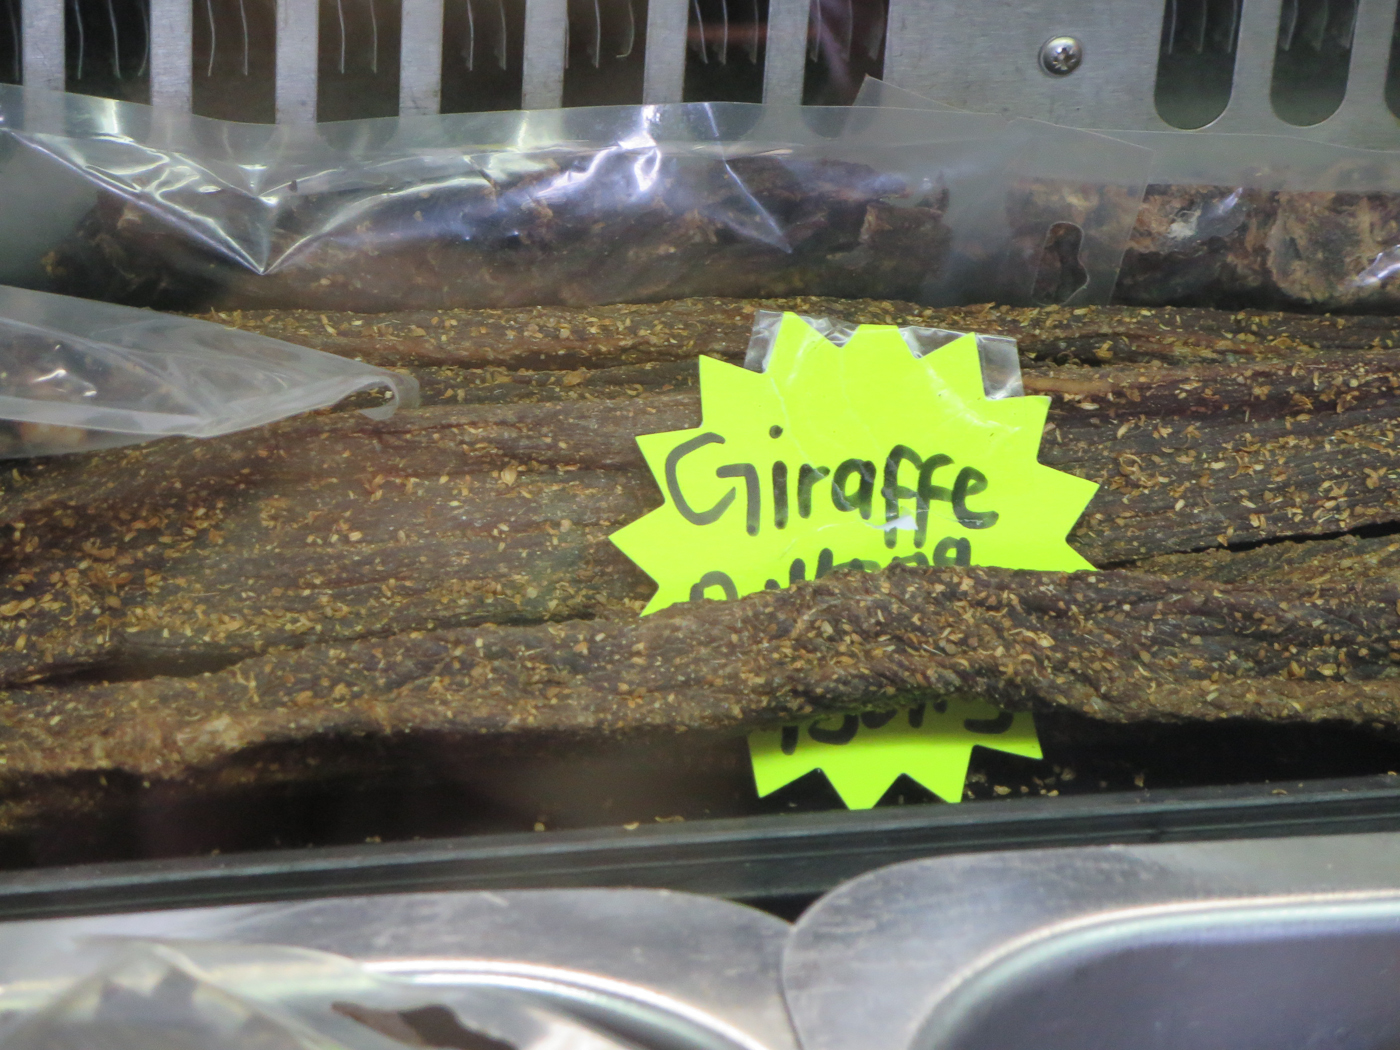 Giraffe Biltong. Yes, we ate it.